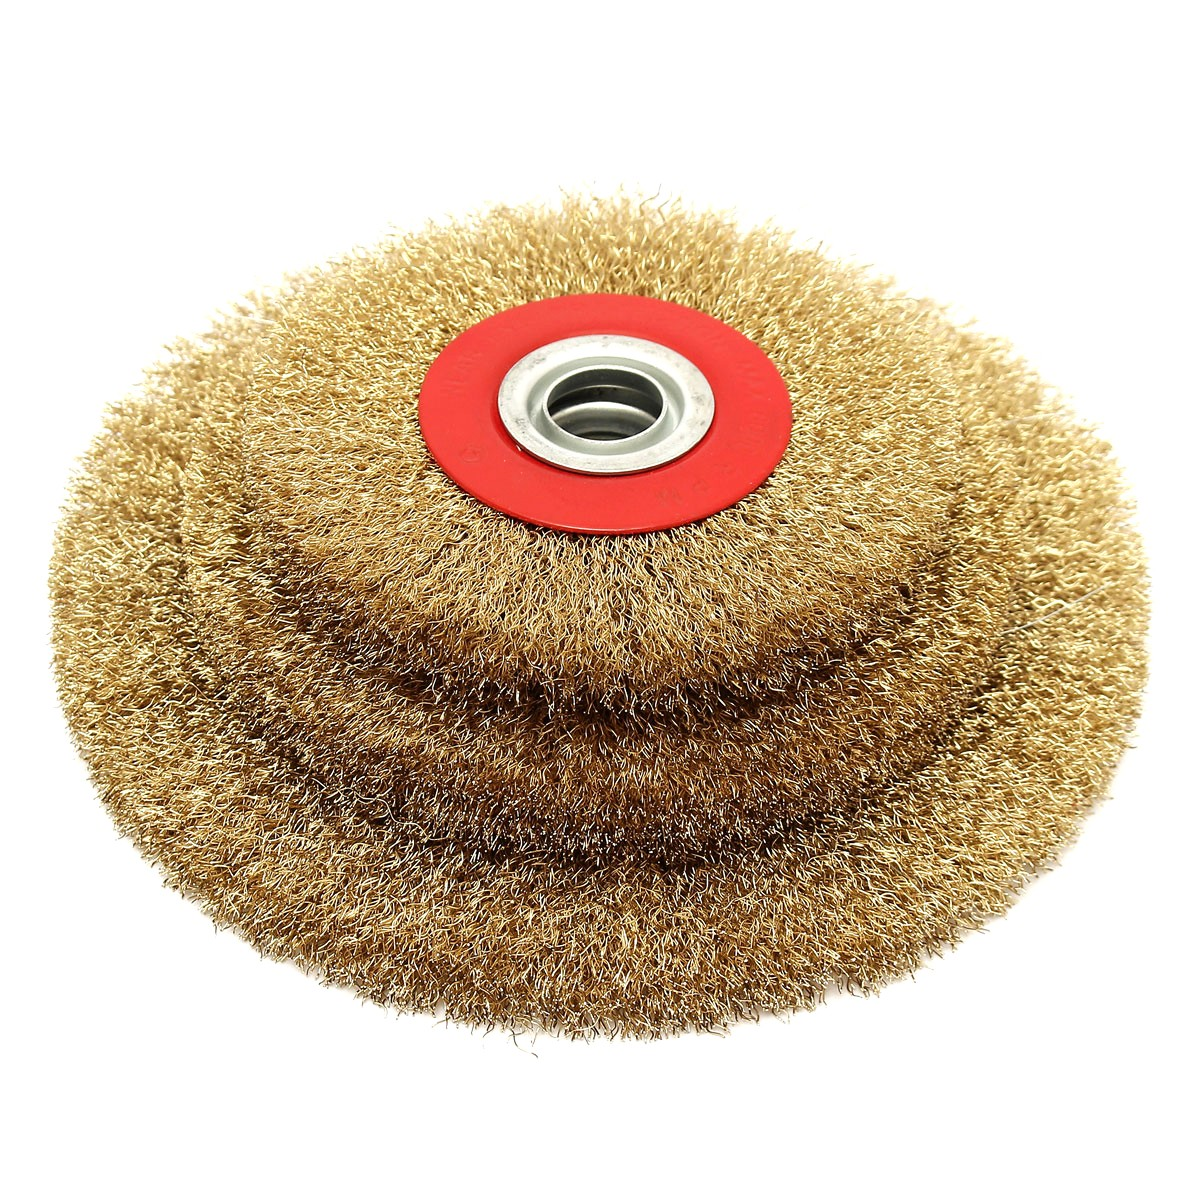 5 6 8 Inch Grinding Abrasive Steel Wire Wheel Grinder 5 6 8'' Wire Brush Fine With Reducers Cleaning Polishing Different Sizes